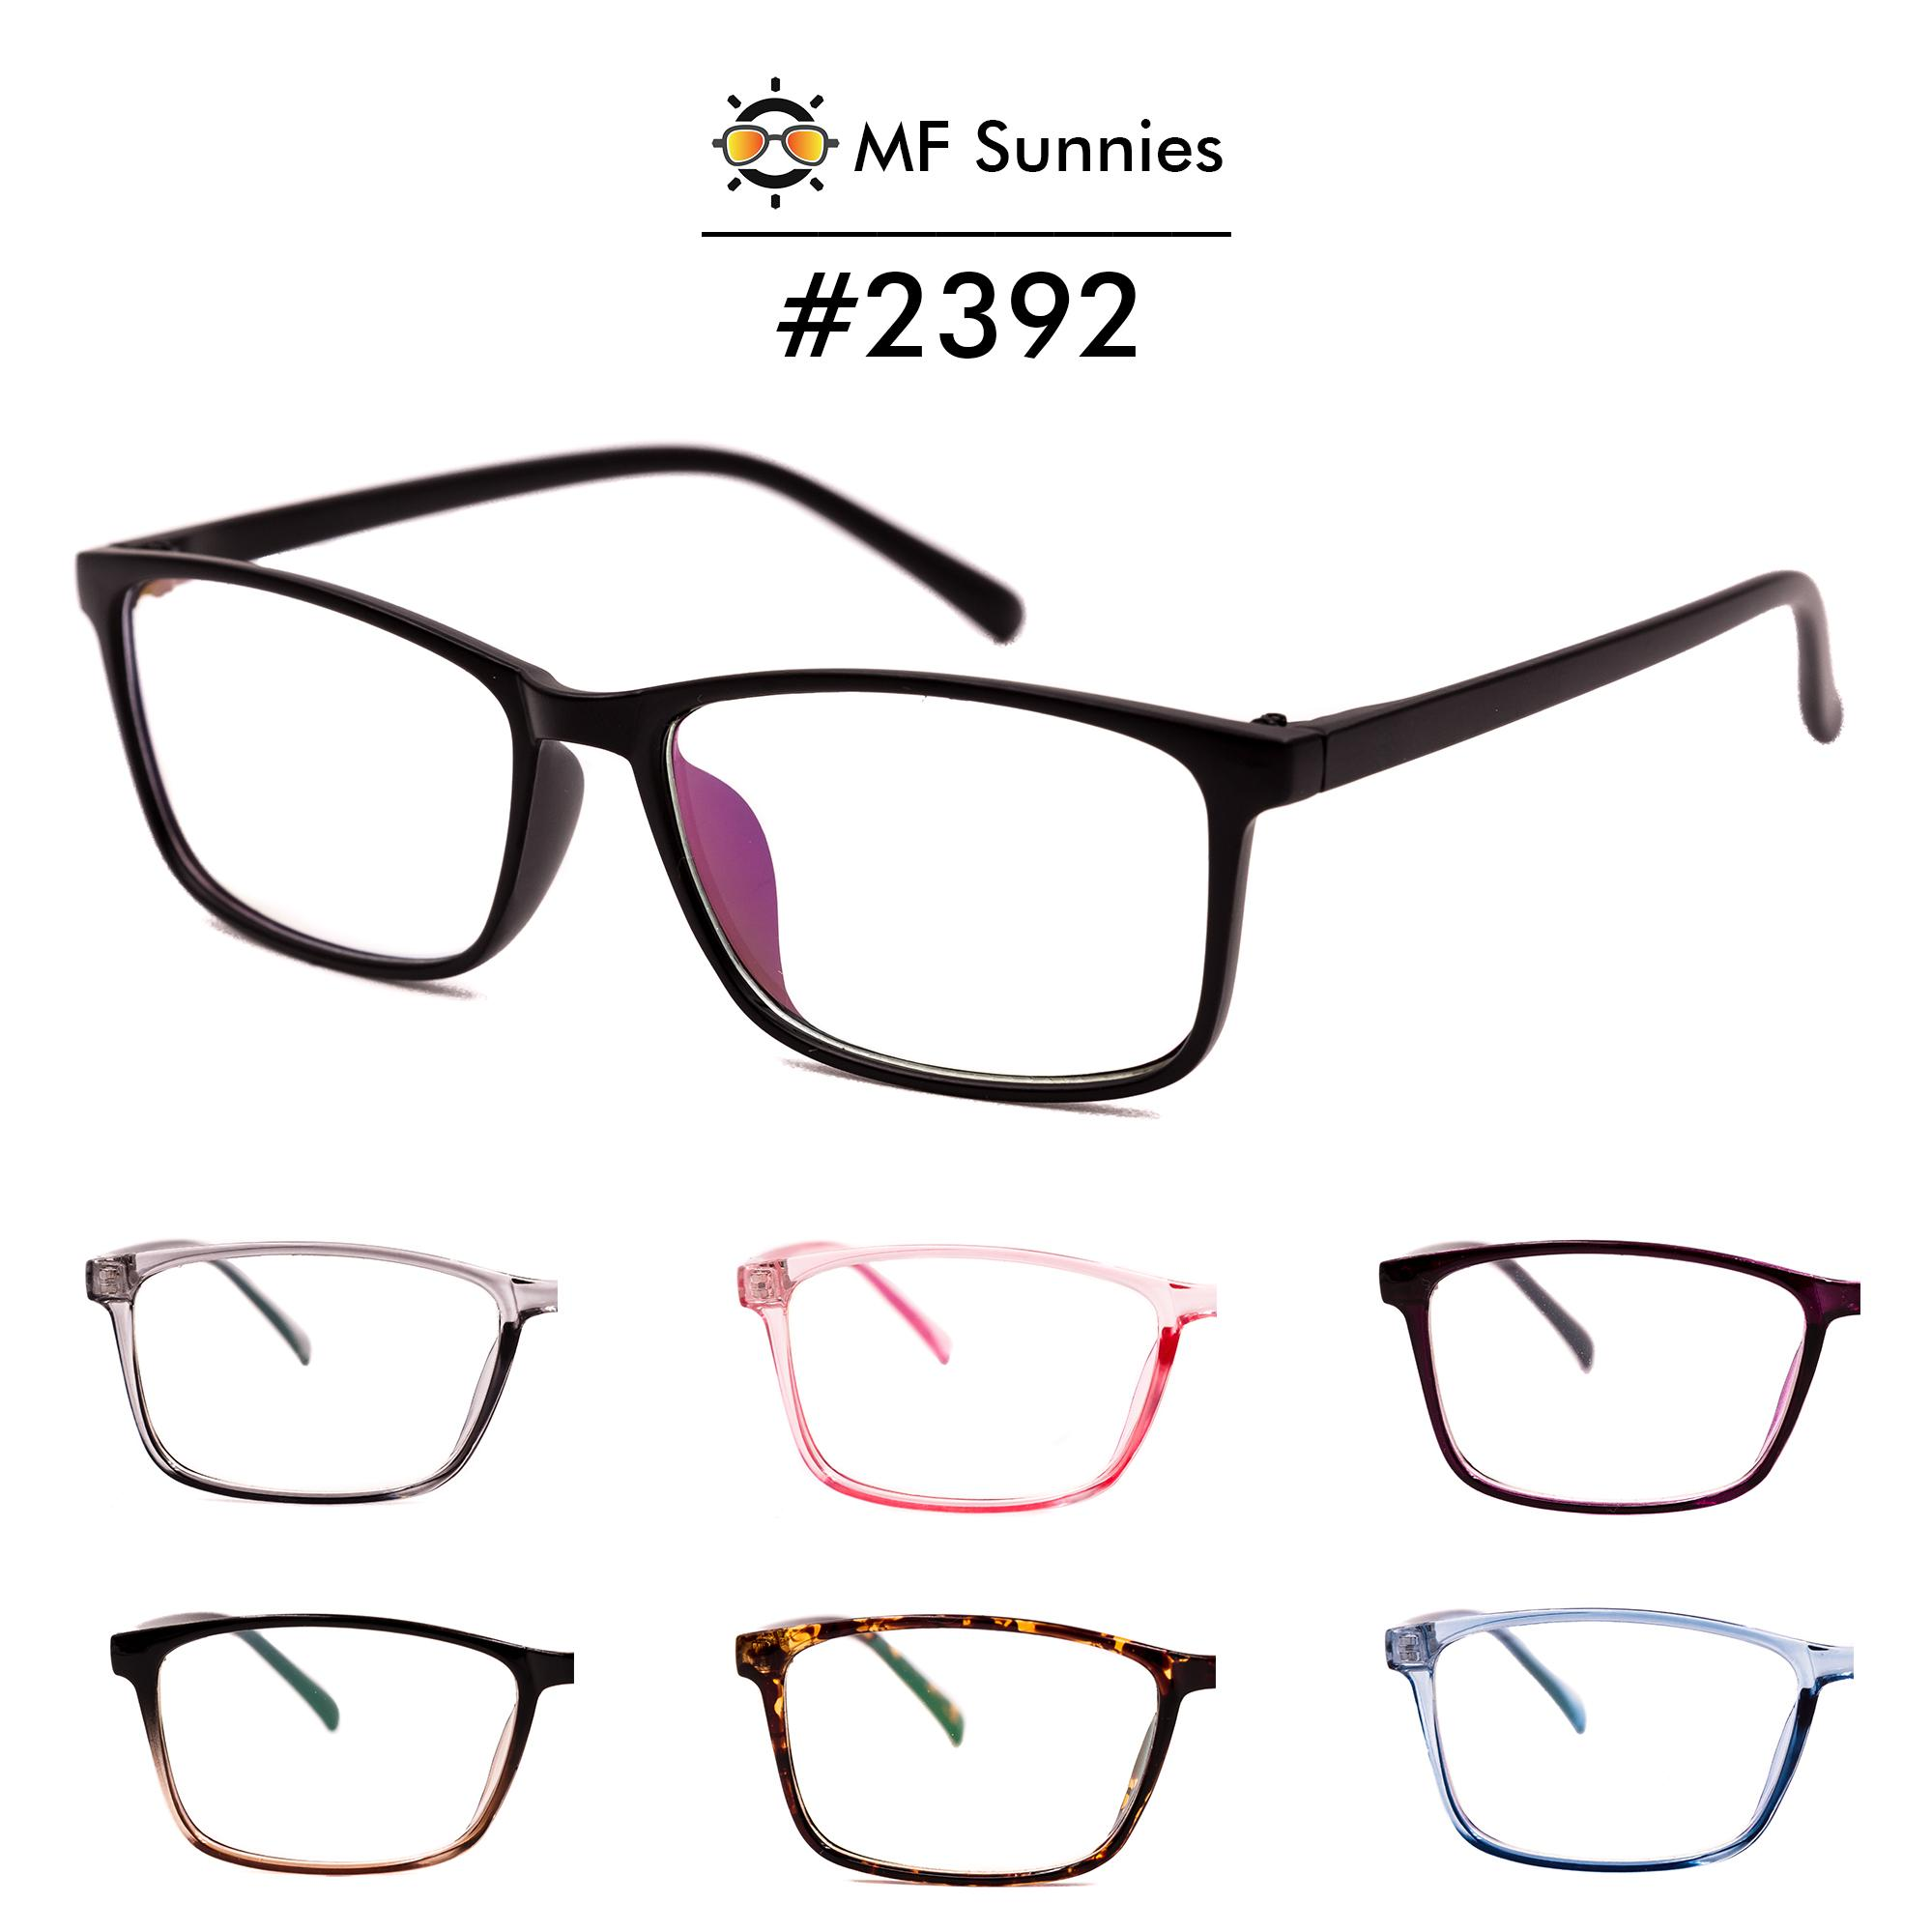 b6cbb3bbec2b MFSunnies Computer Anti-Radiation Blue light Unisex eyewear High quality  acetate optical frame Metal